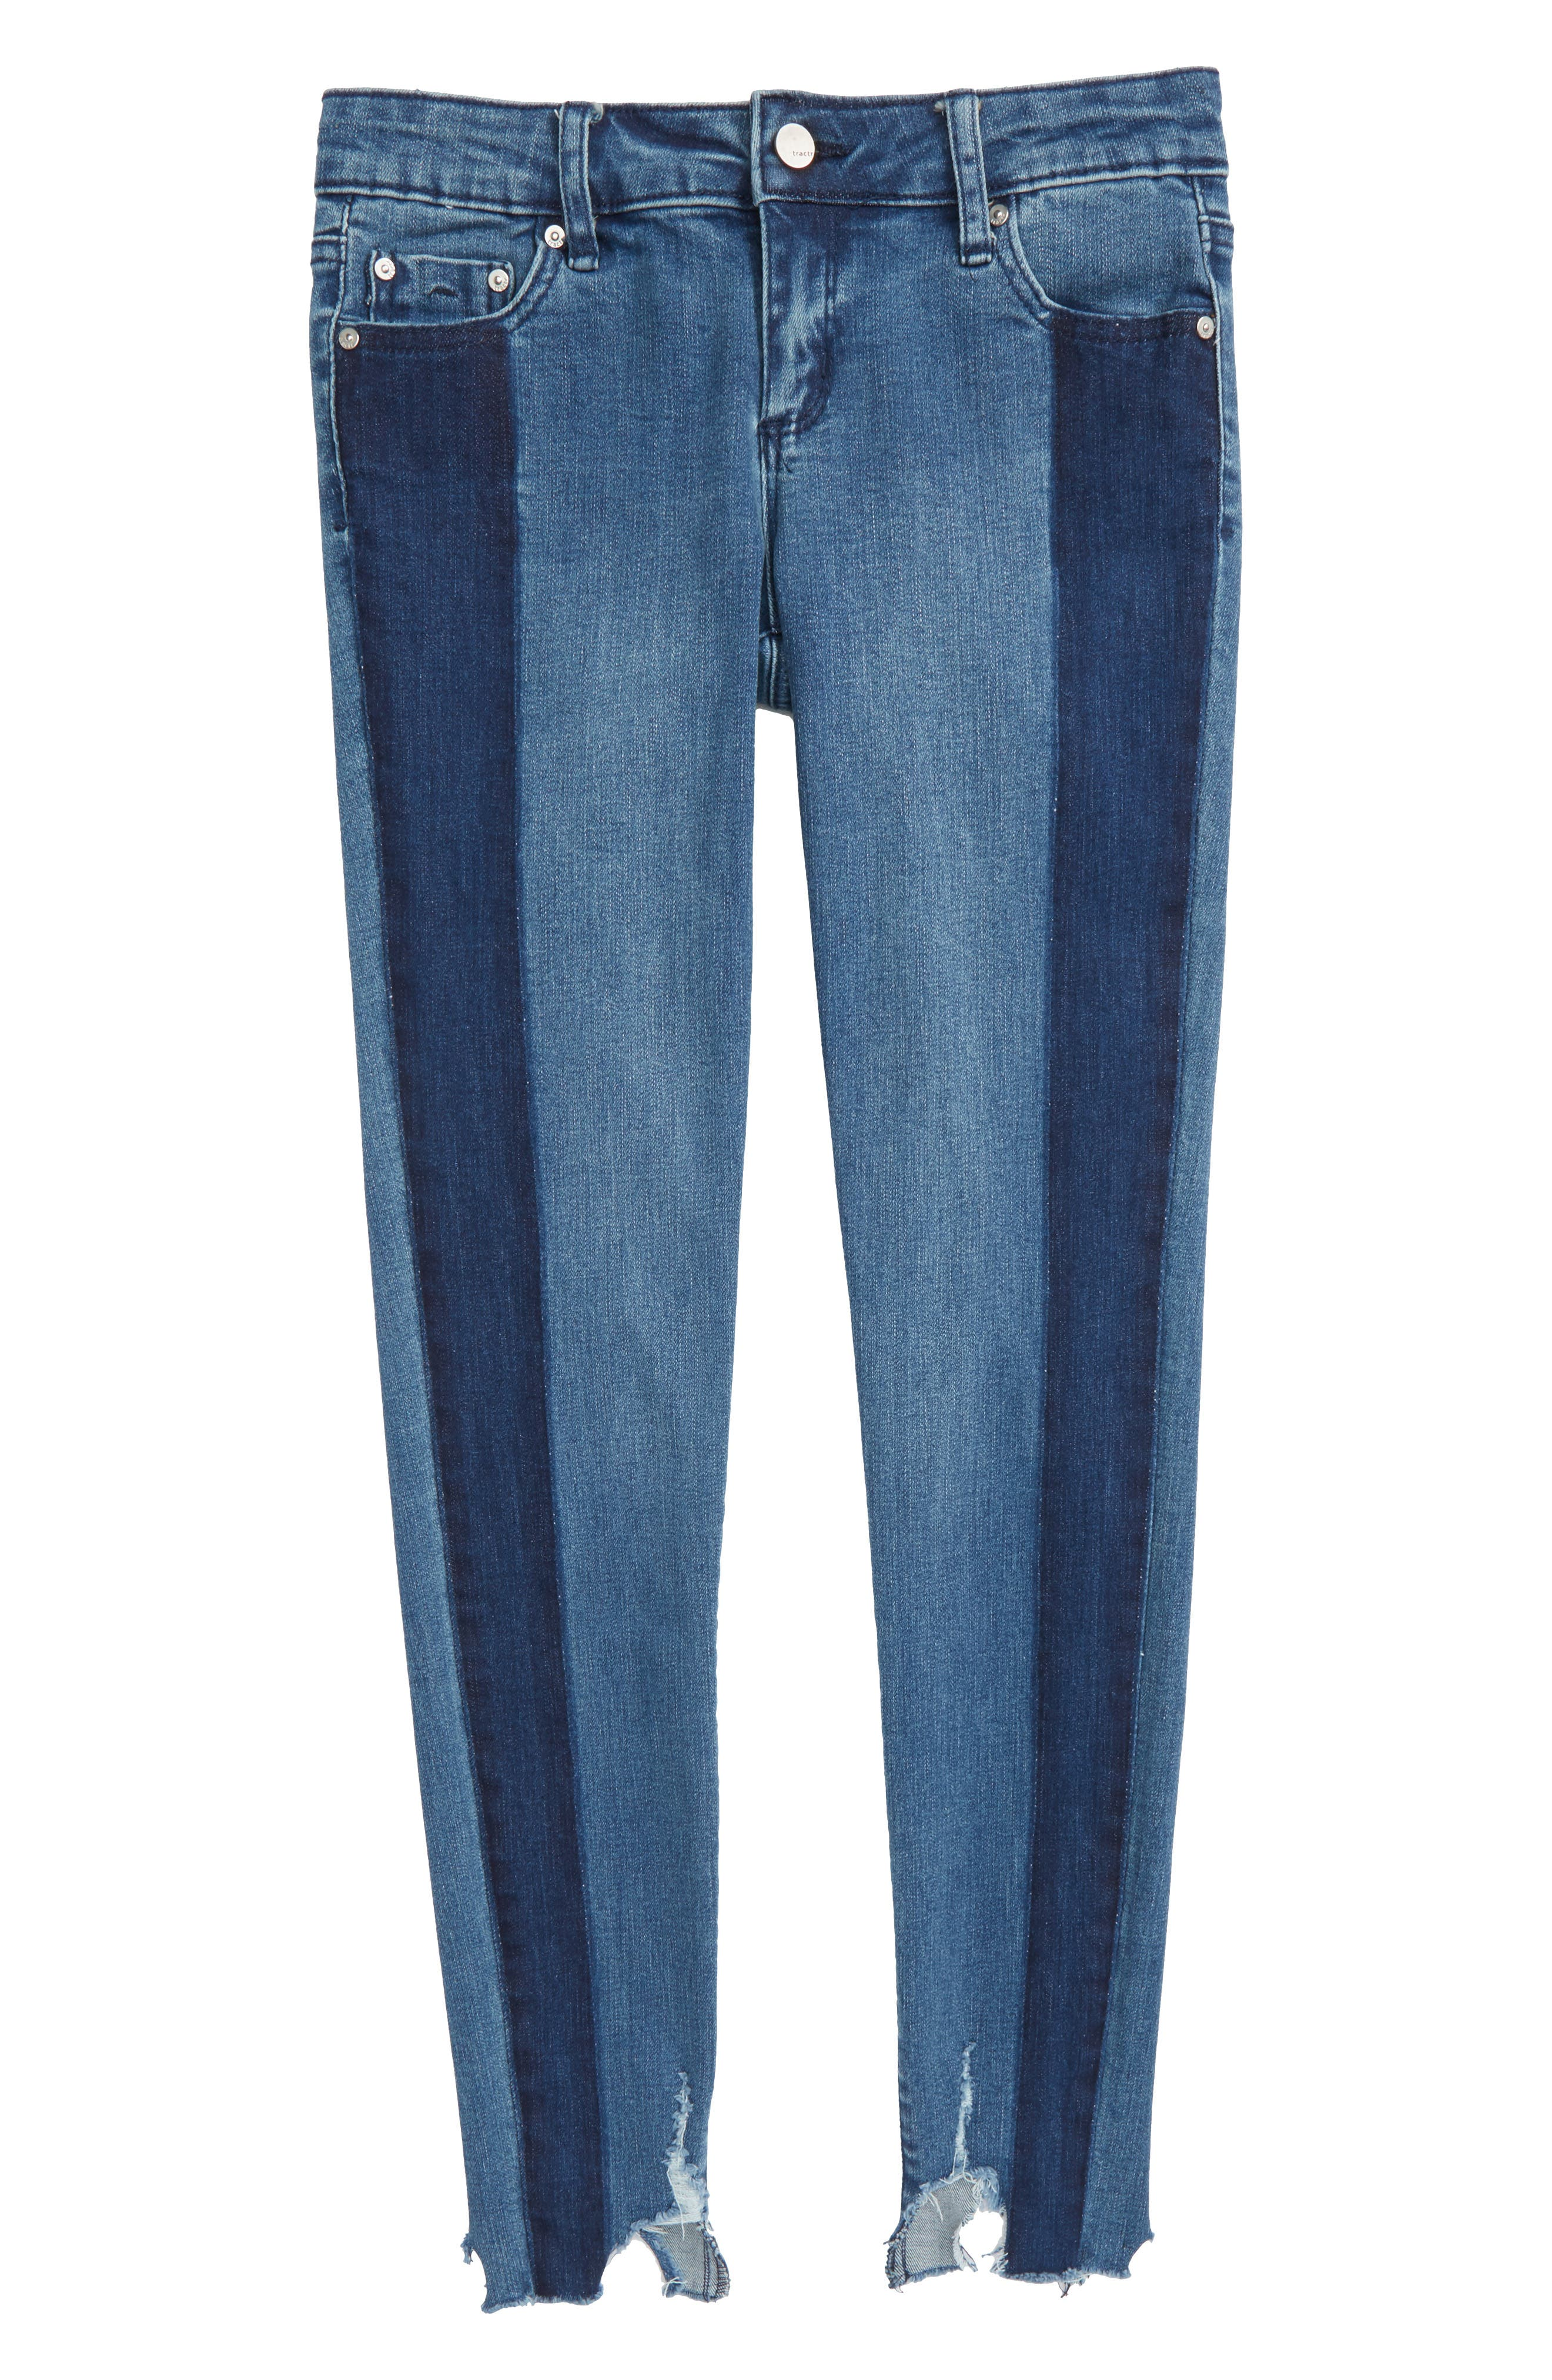 Crop Skinny Jeans,                             Main thumbnail 1, color,                             407